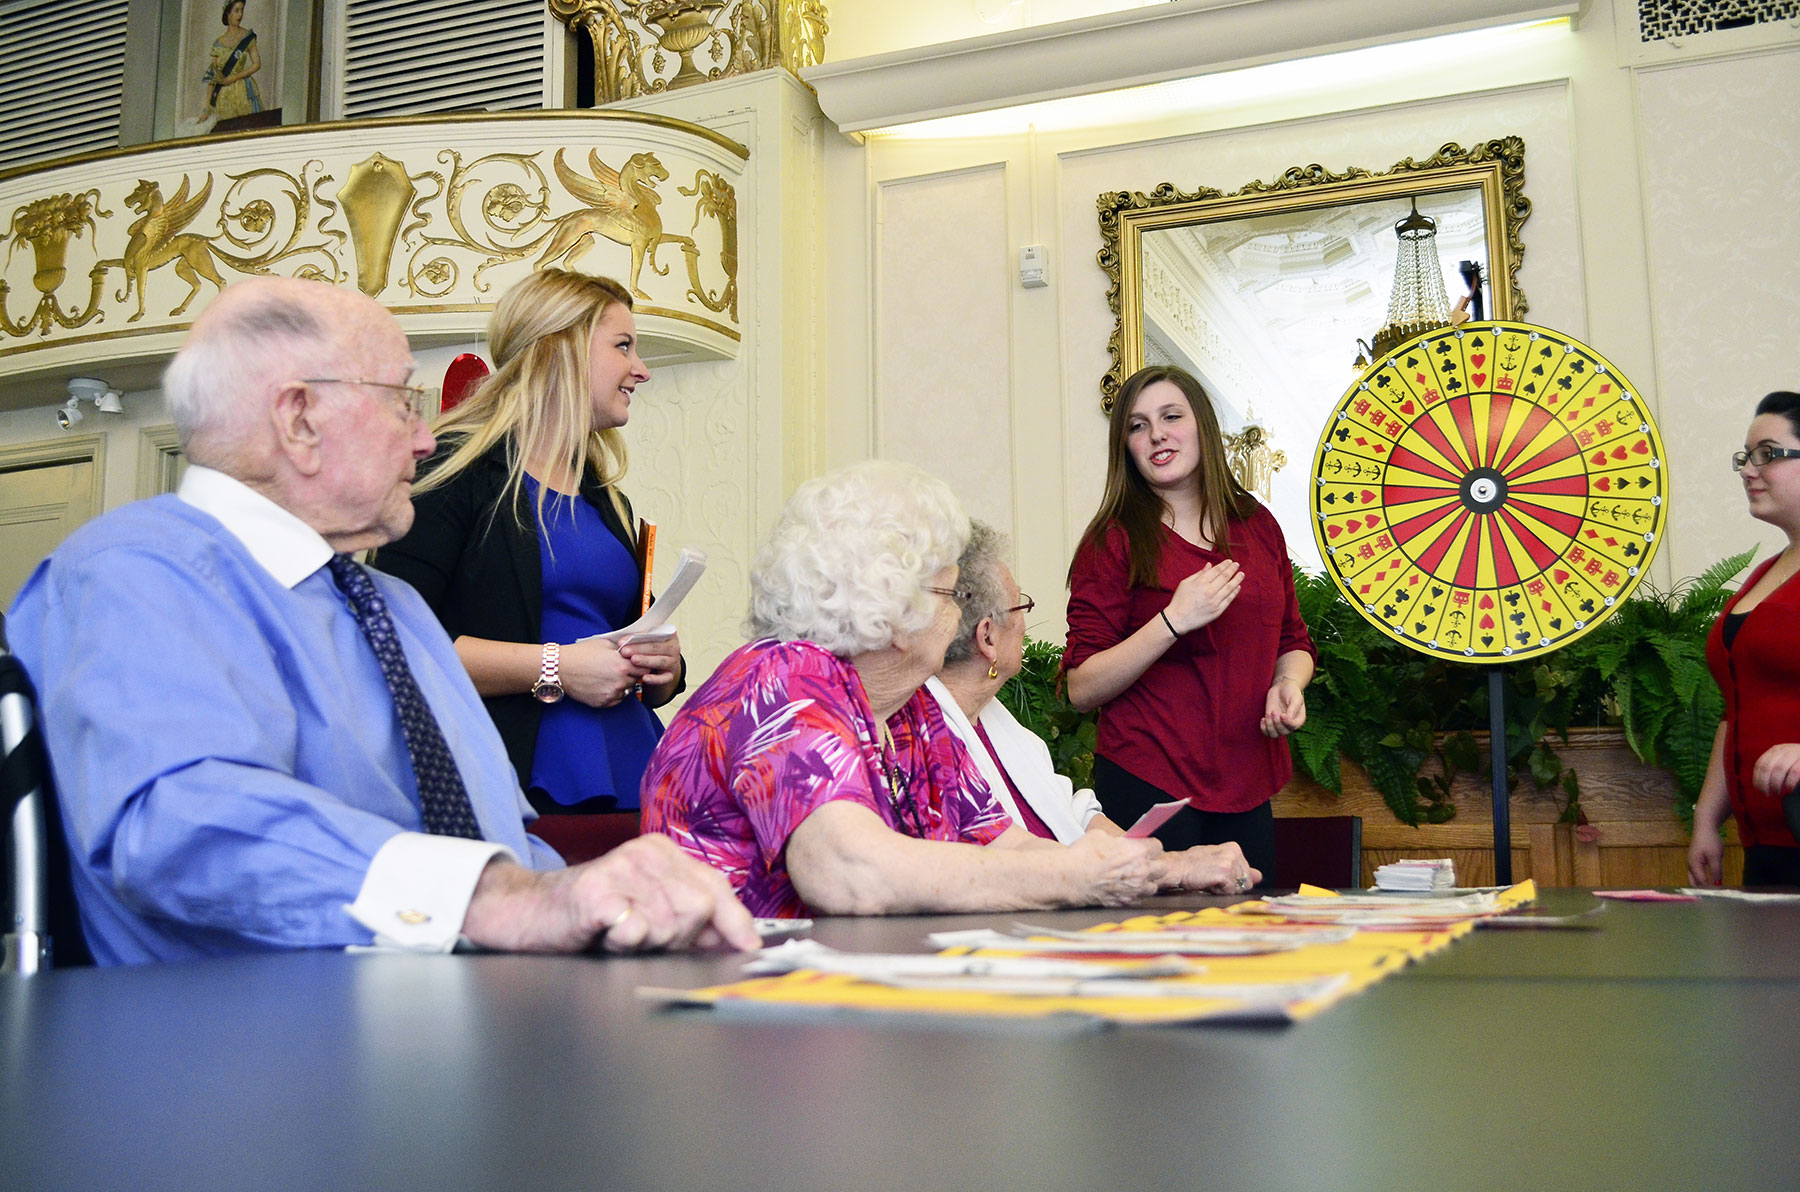 Students playing bingo with elderly people